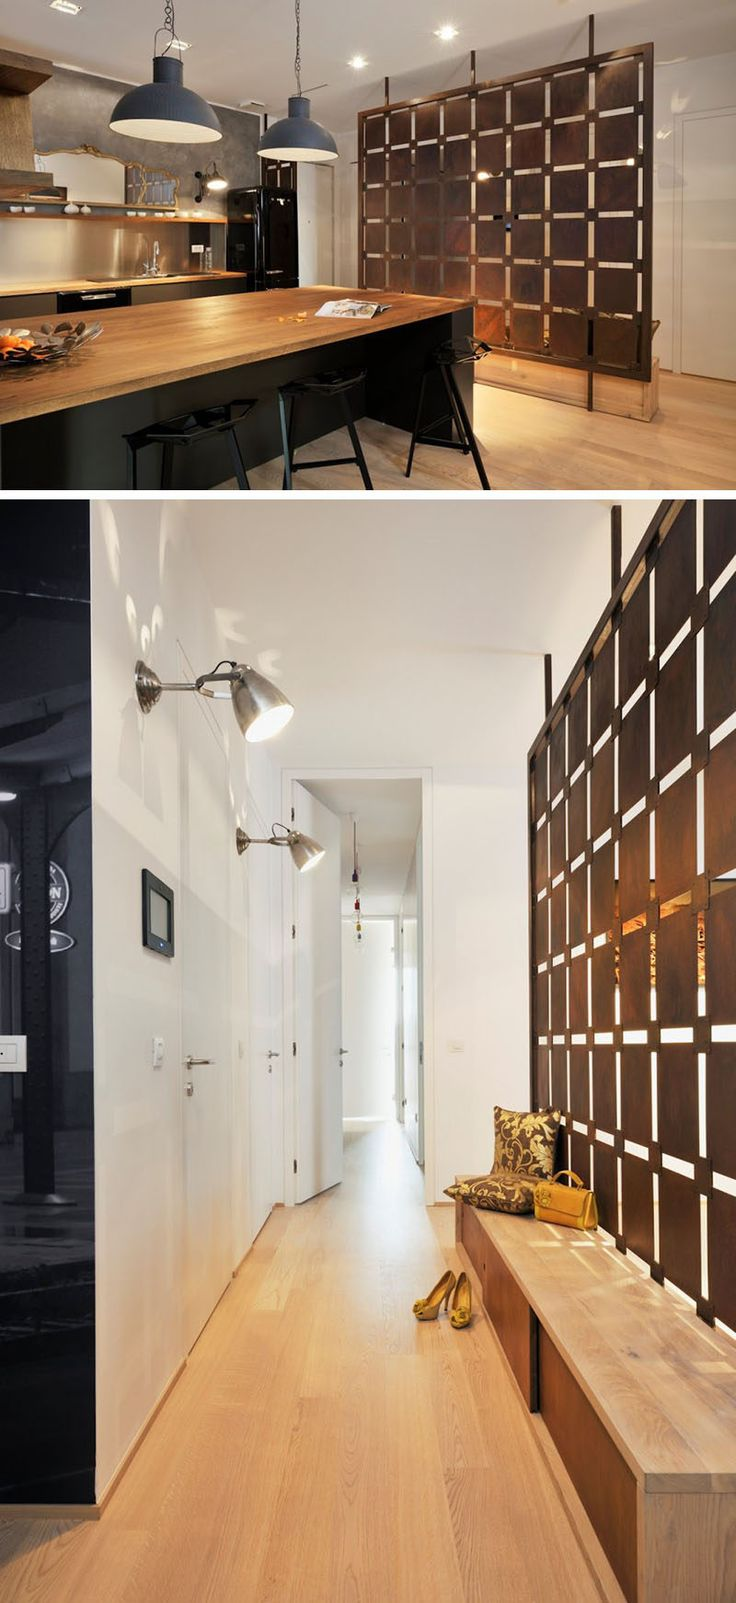 15 Creative Ideas For Room Dividers Artistic Geometric Wall Panels Divide The Entry Way